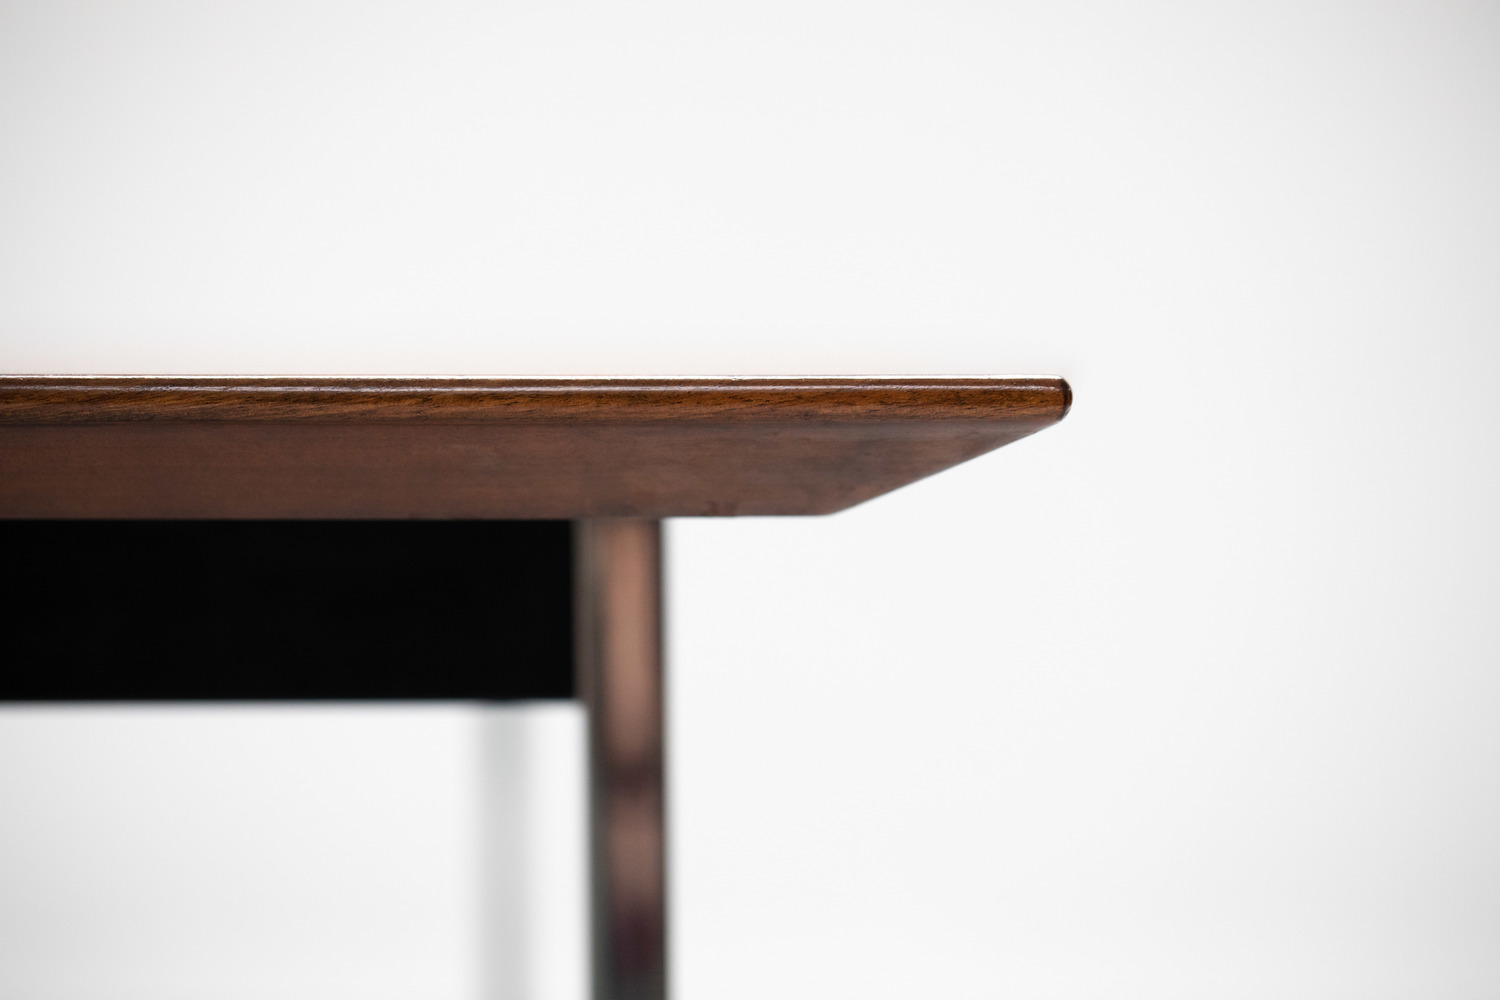 Florence Knoll 3 m long table